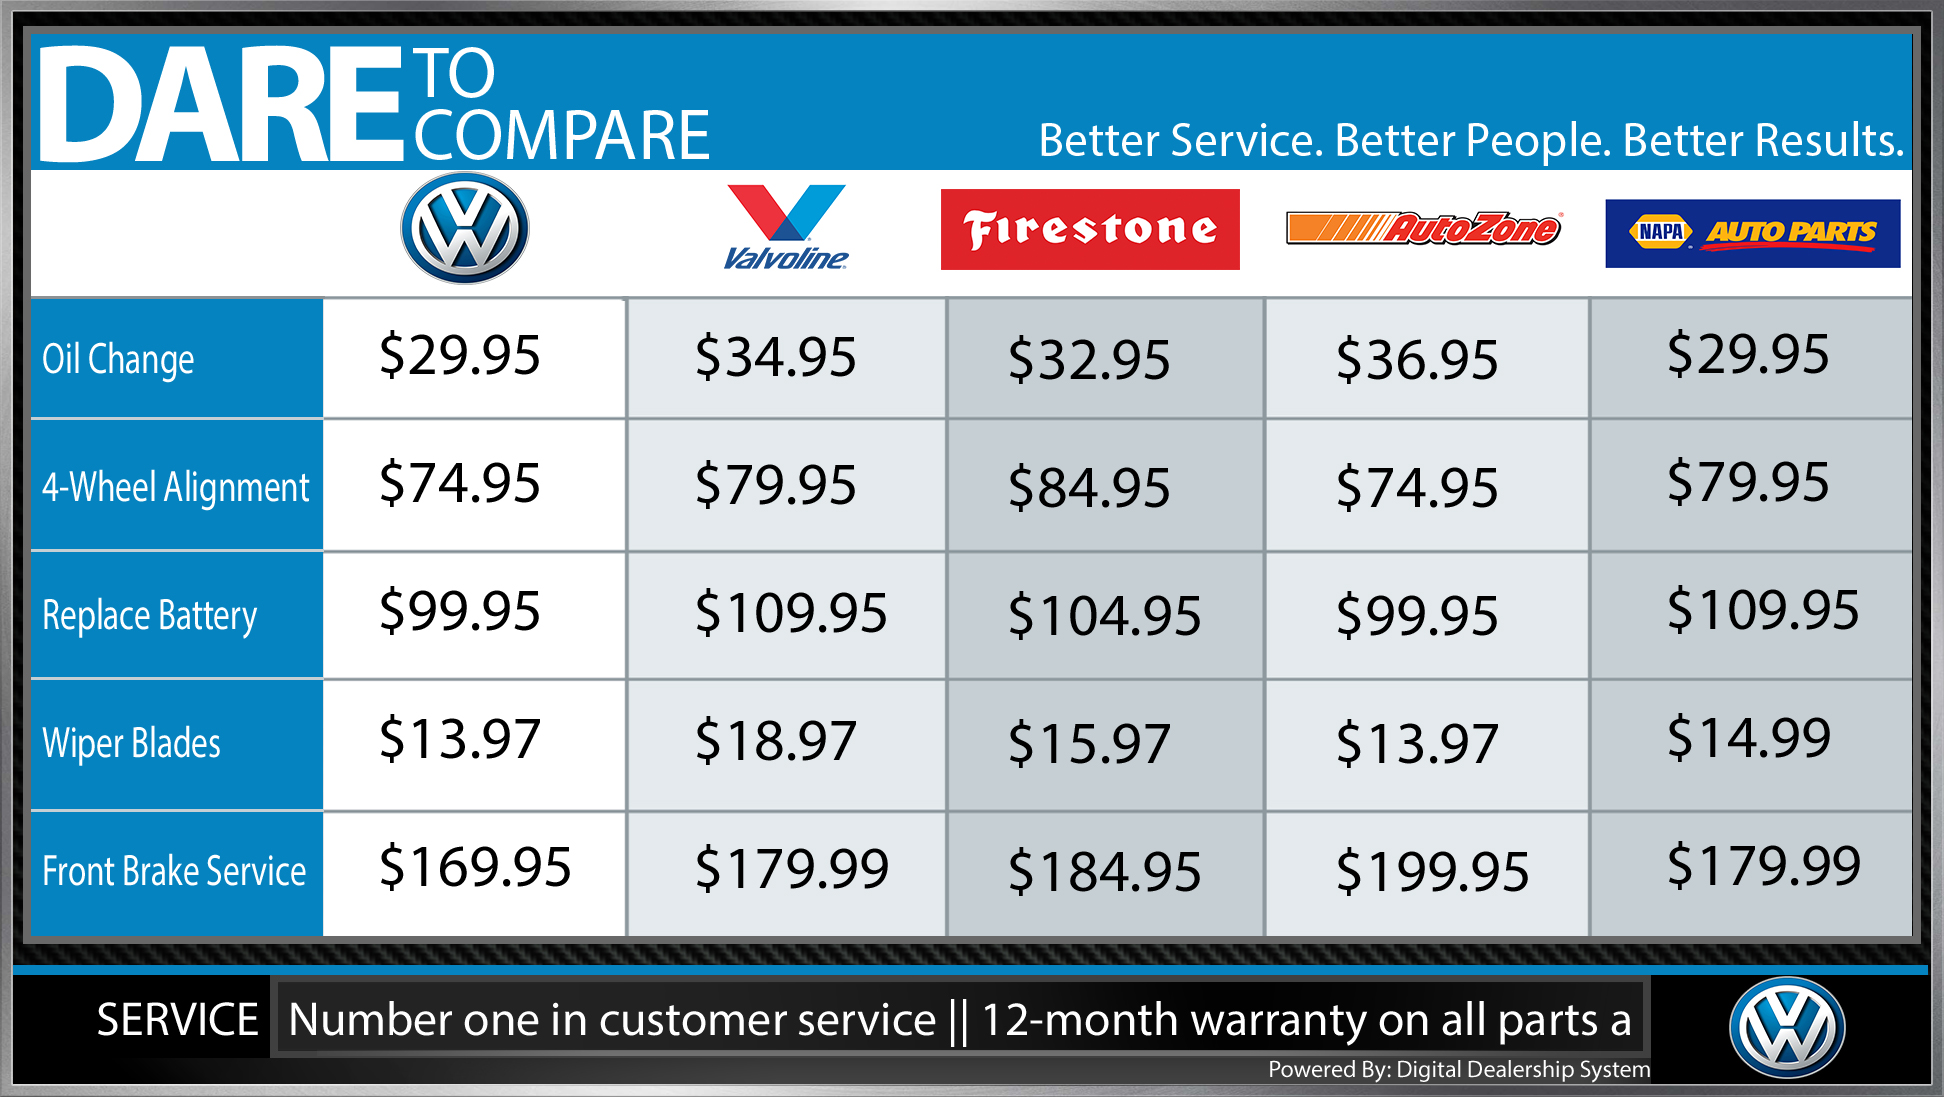 coupons the has download vw lavoj servicexpress available in specials customers nj blue read area to generous service county samurai and volkswagen lyndhurst three fyti auto coupon